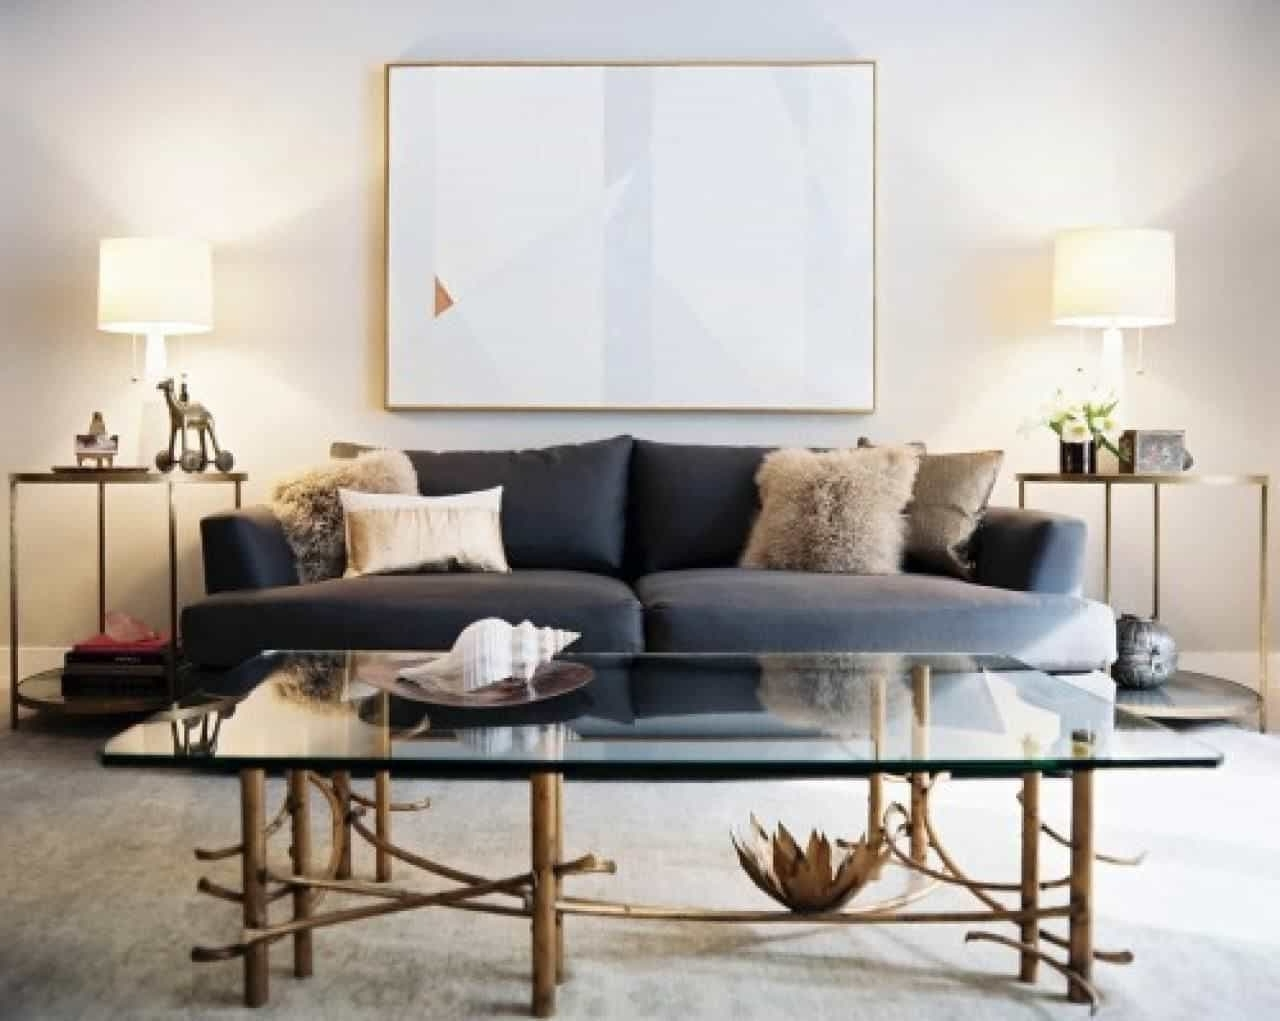 Recent Modern Living Room With Grey Sofa And Side Tables With Table Lamps Throughout Modern Living Room Table Lamps (View 9 of 20)